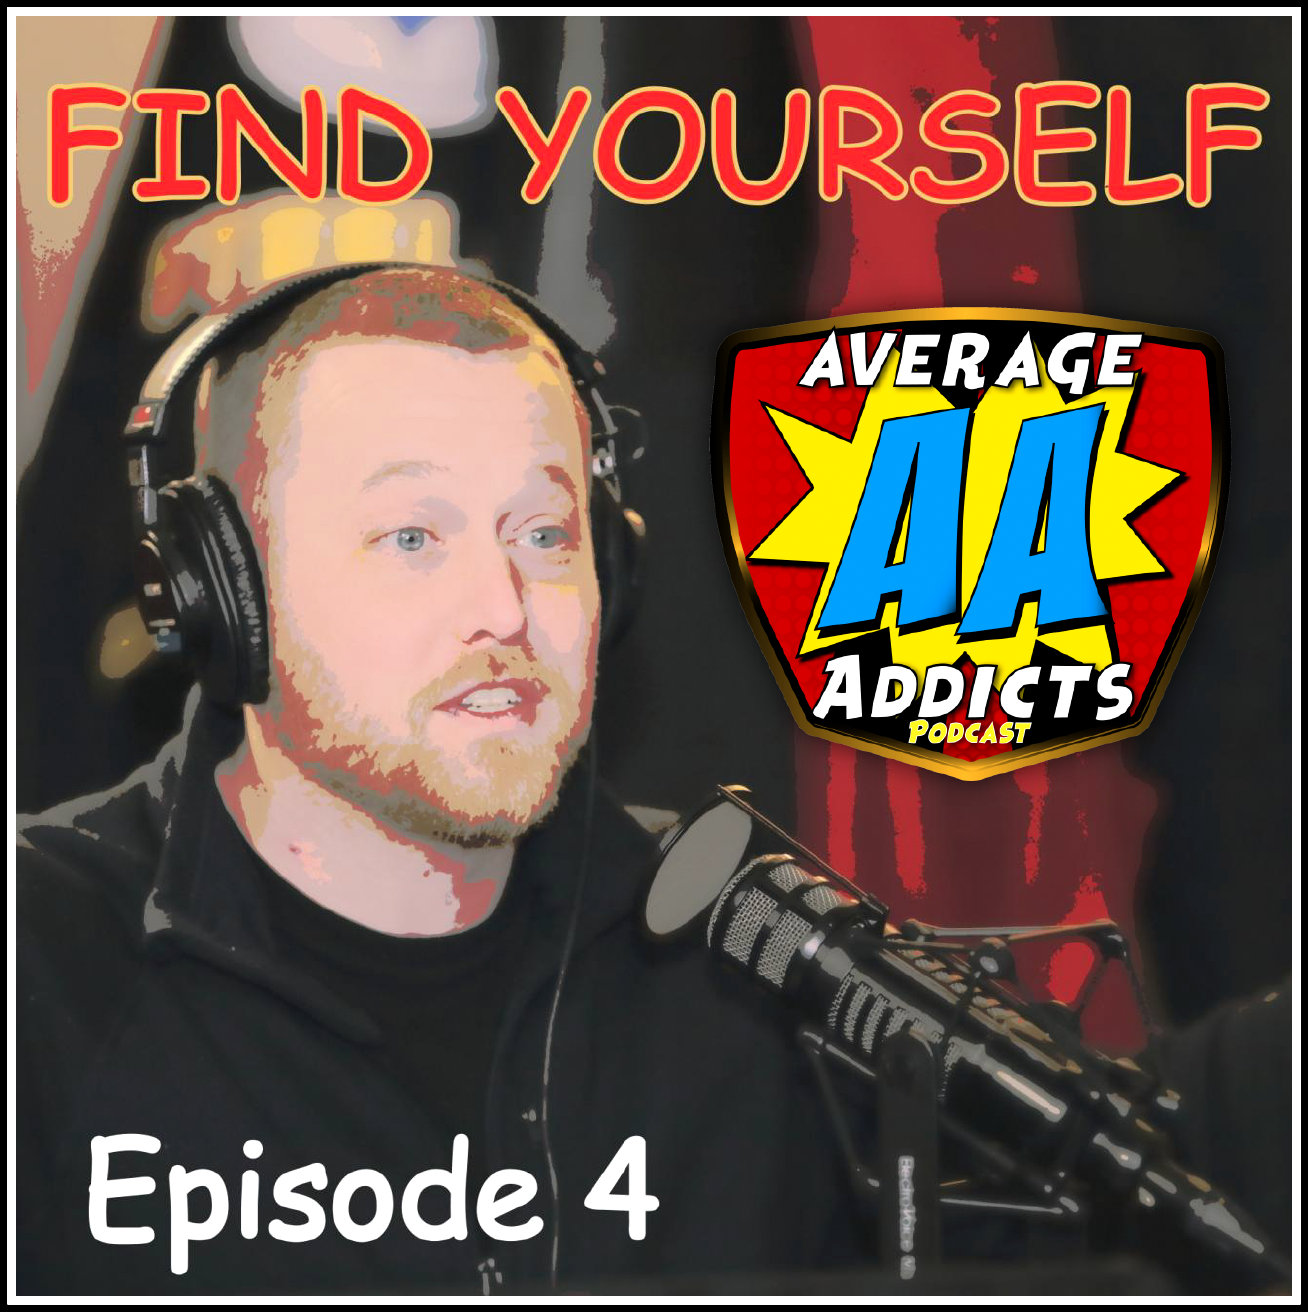 Average Addicts Podcast (Ep04): Find Yourself